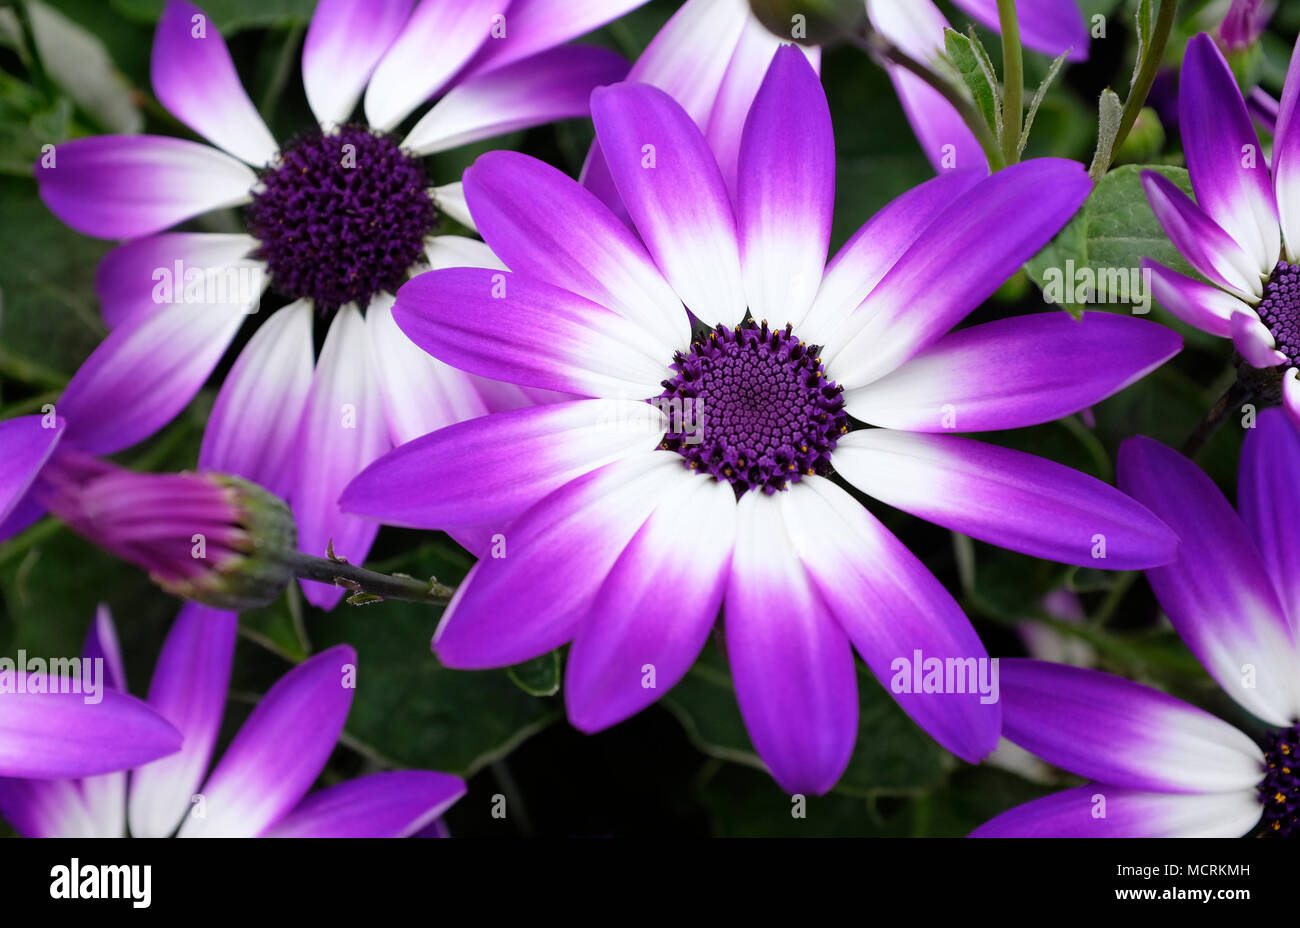 colourful senetti flowers in bloom - Stock Image